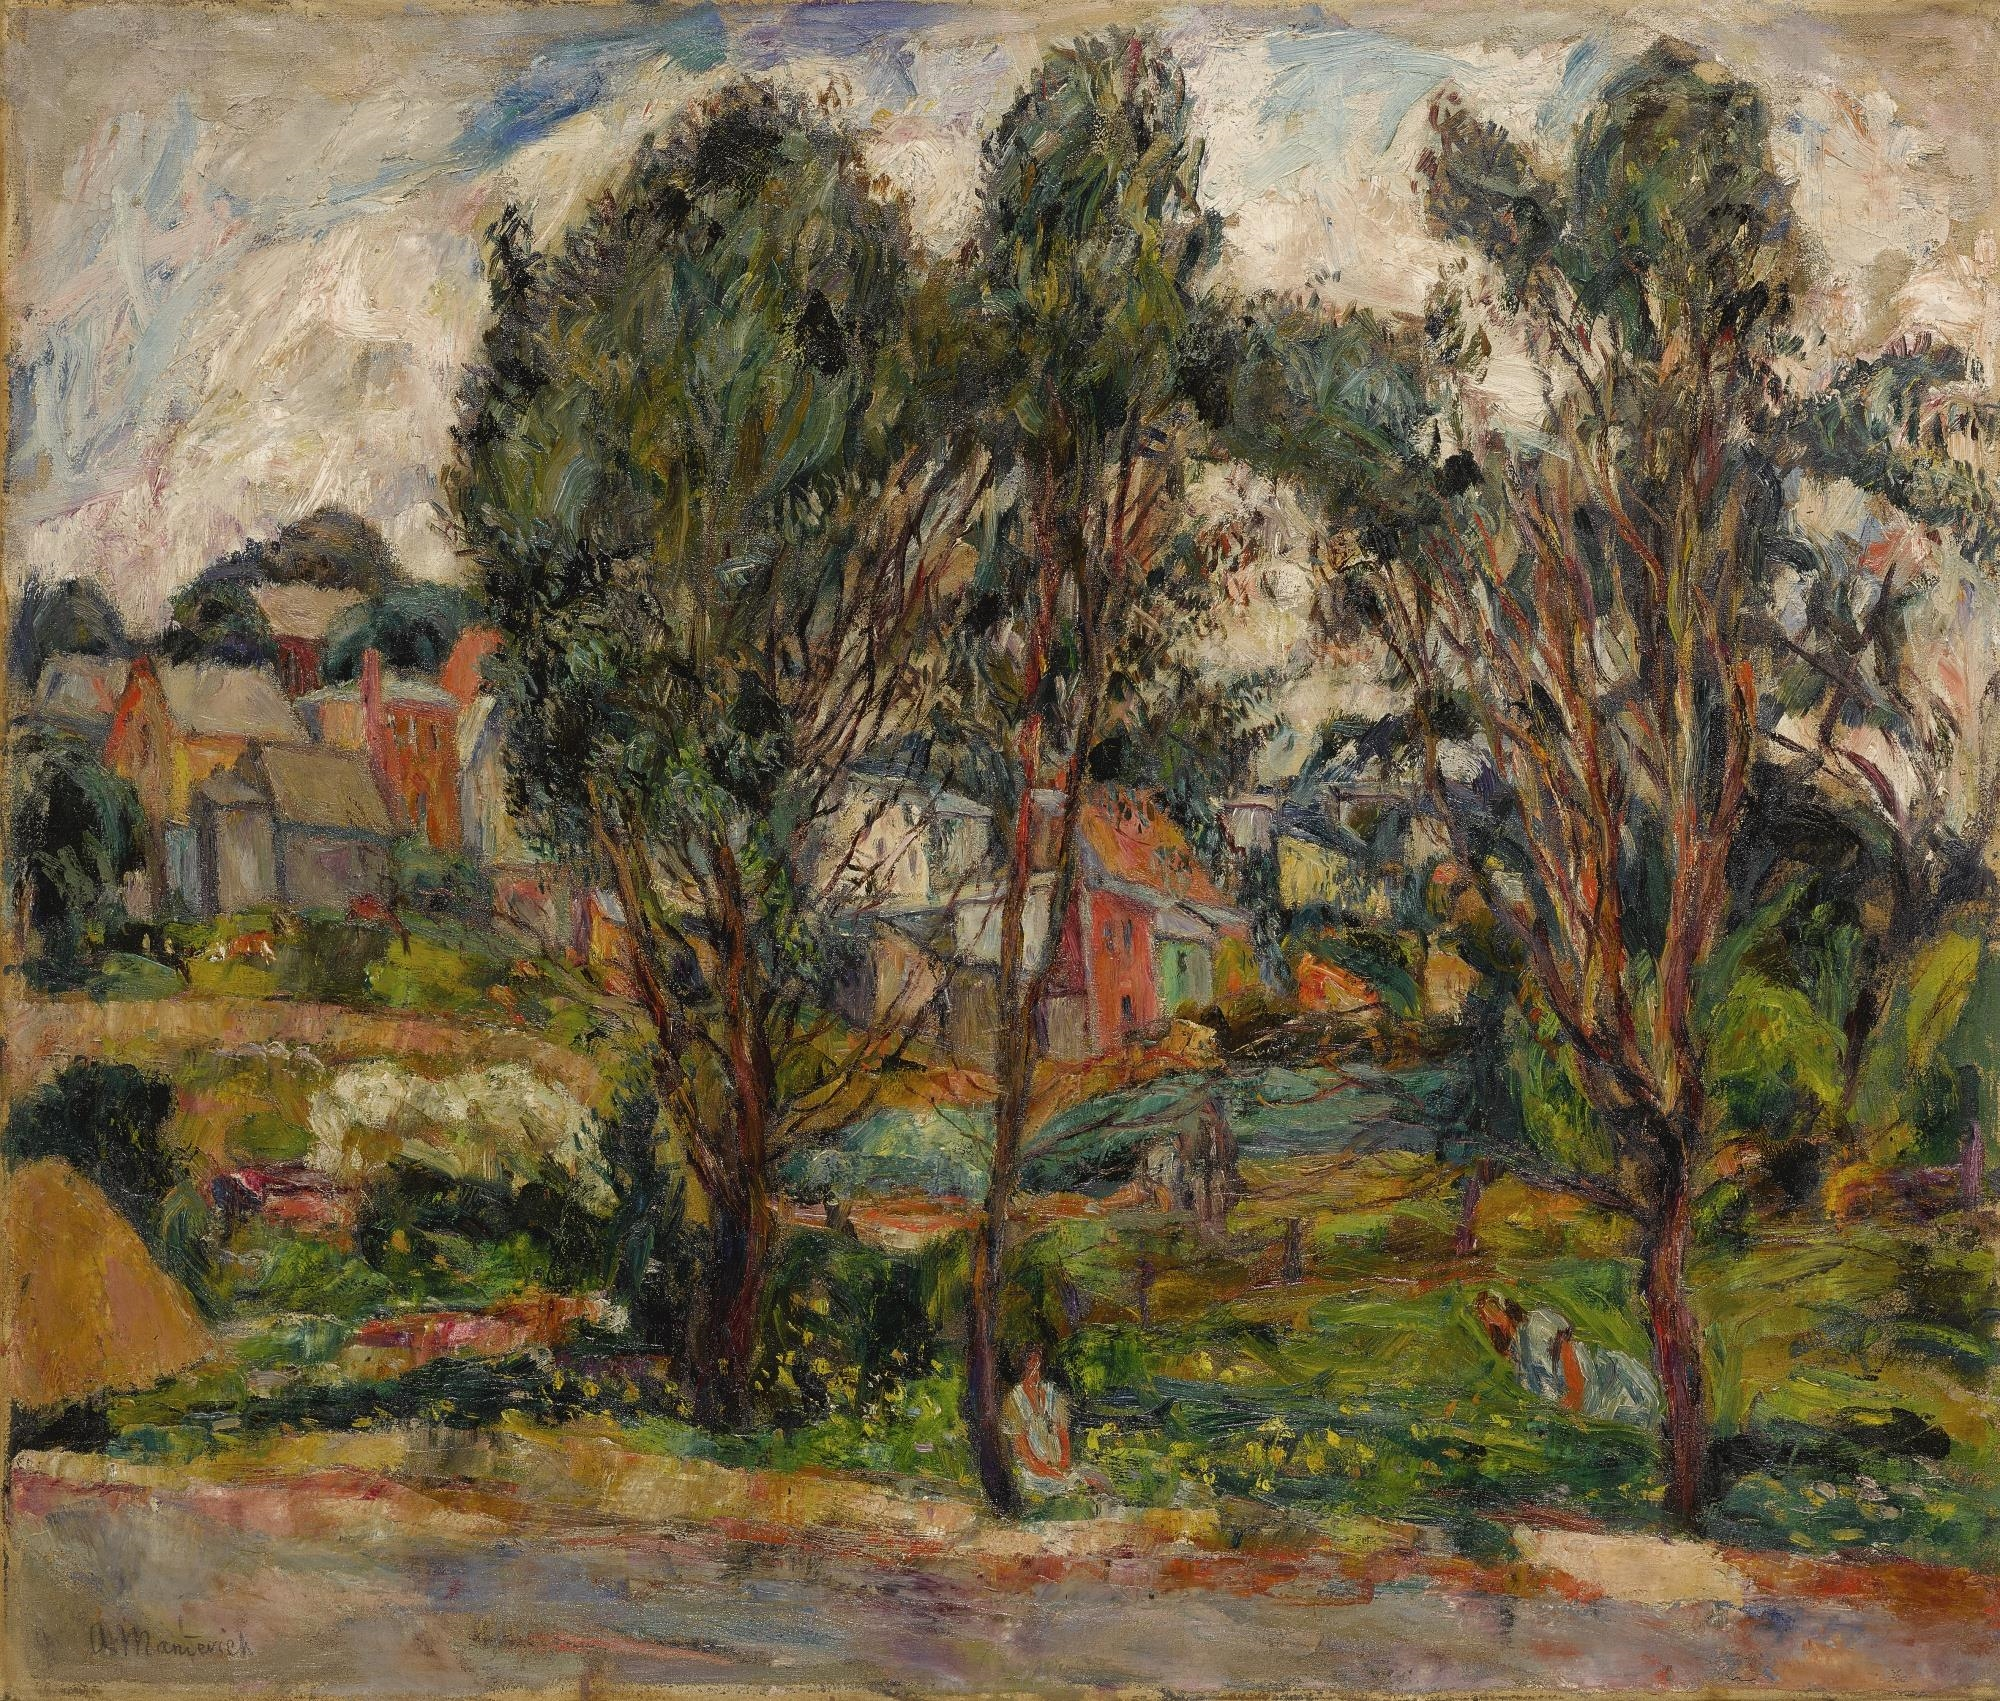 Картинки по запросу abraham manievich townscape with trees